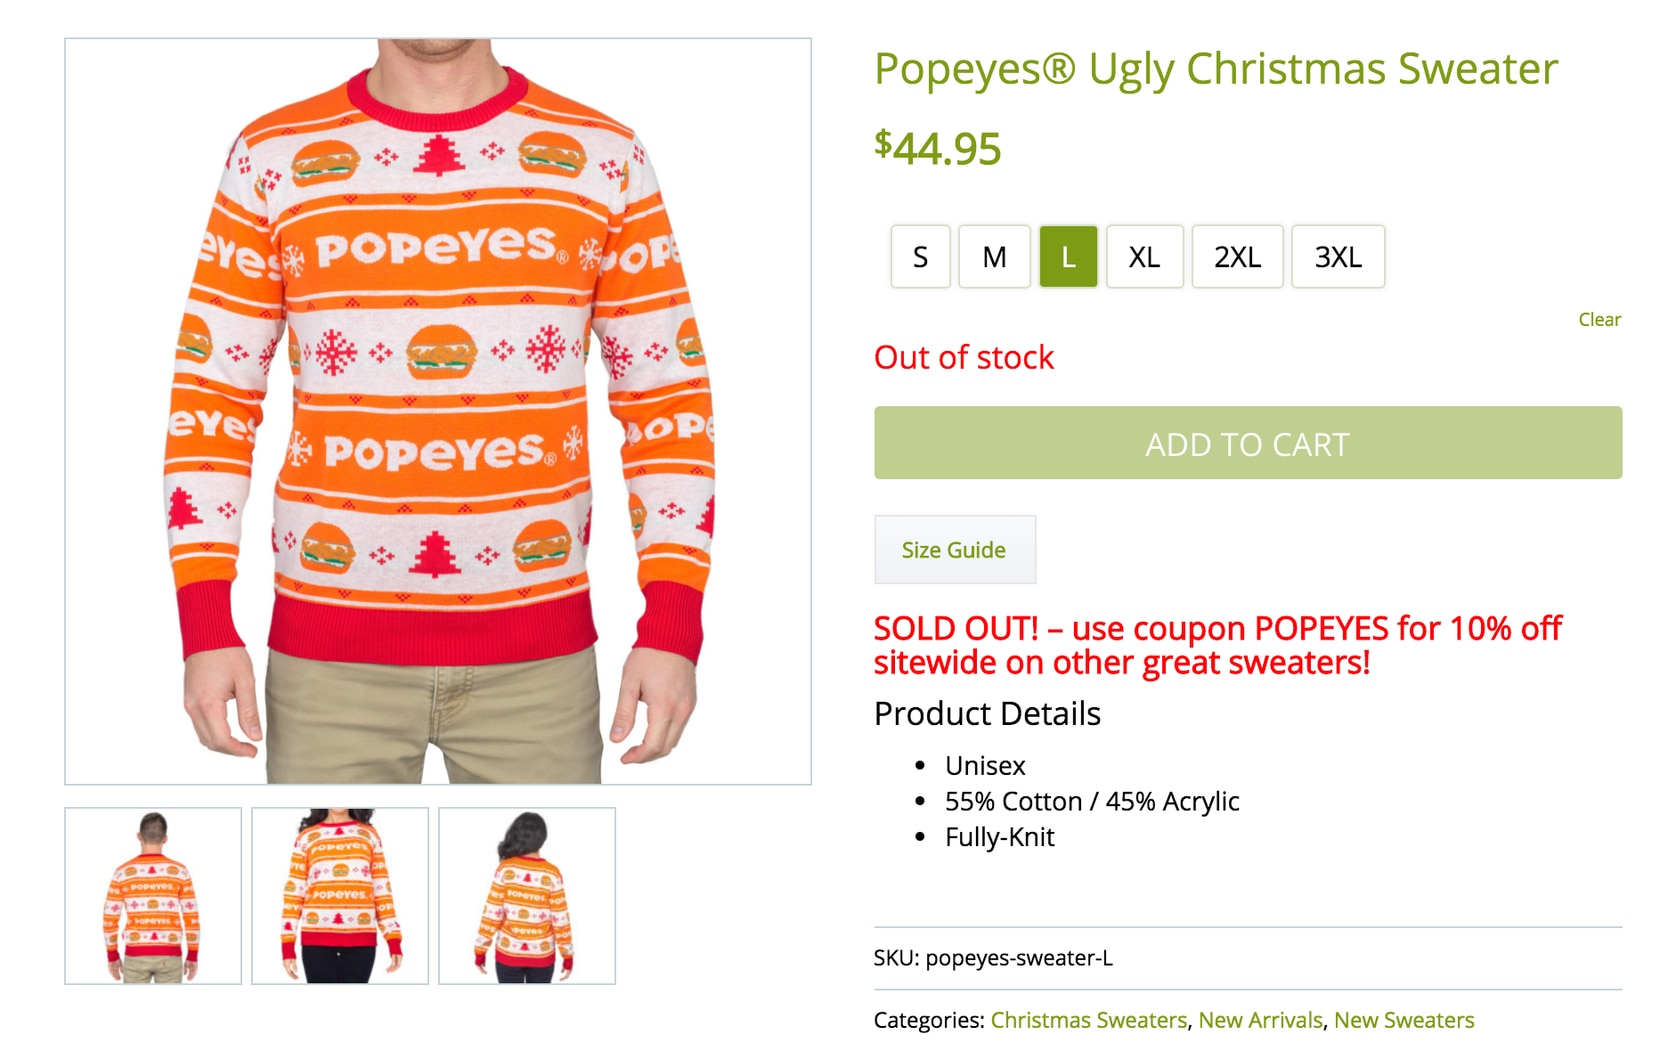 Popeyes' ugly Christmas sweater cost $44.95.